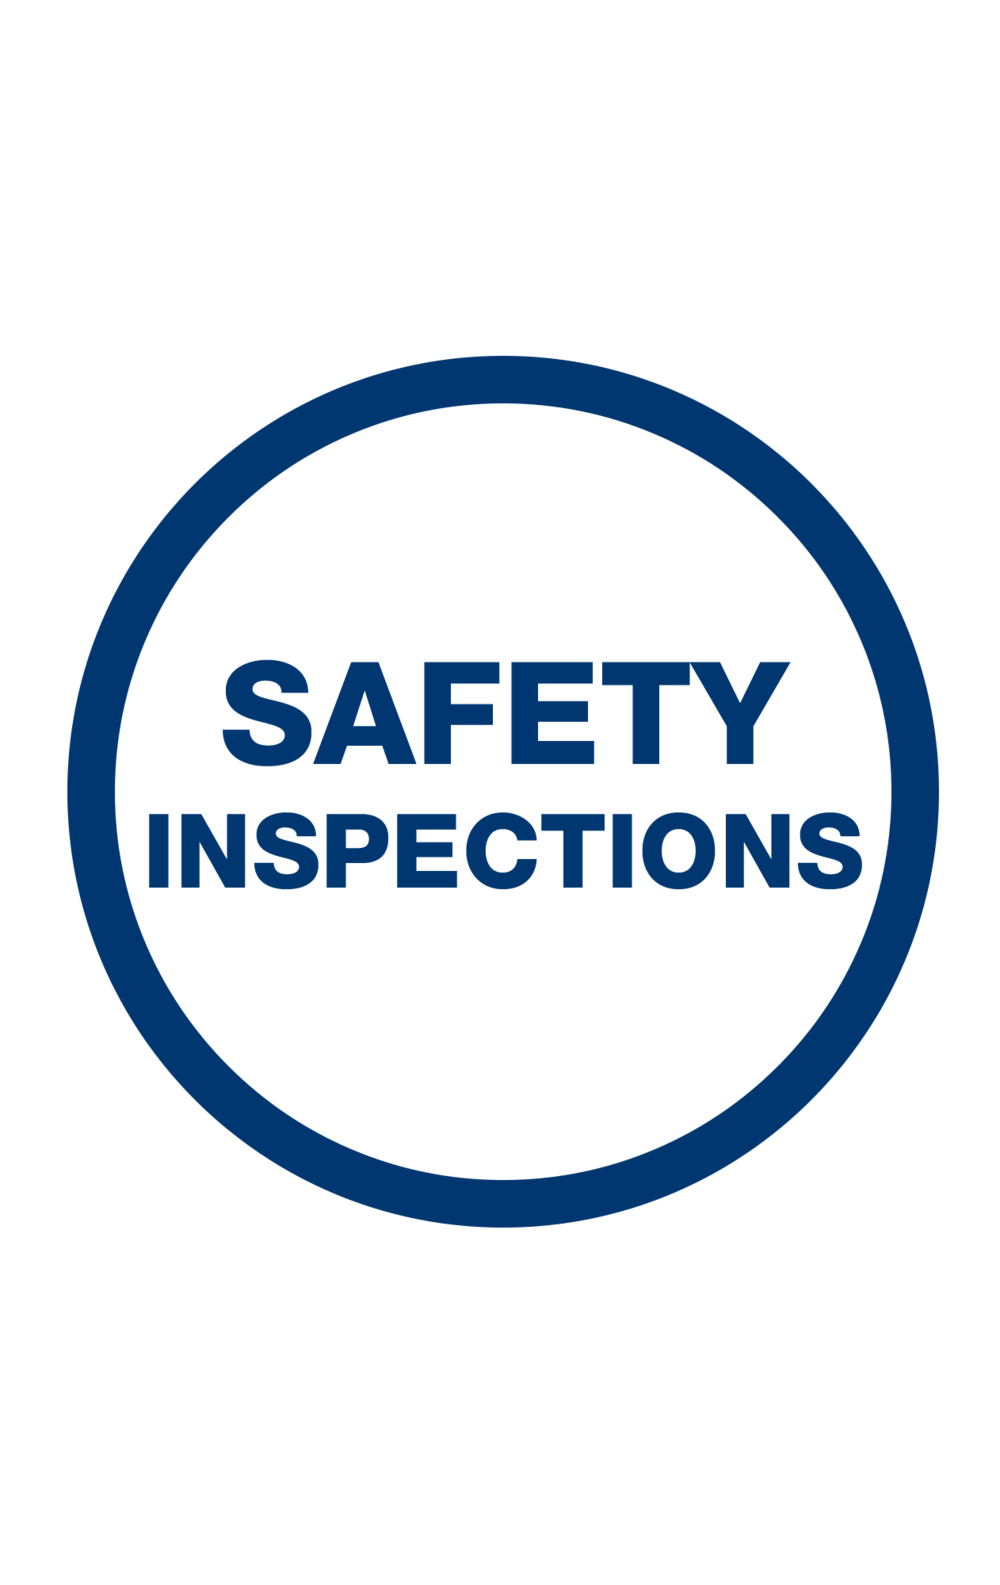 Safety-inspections-2.png